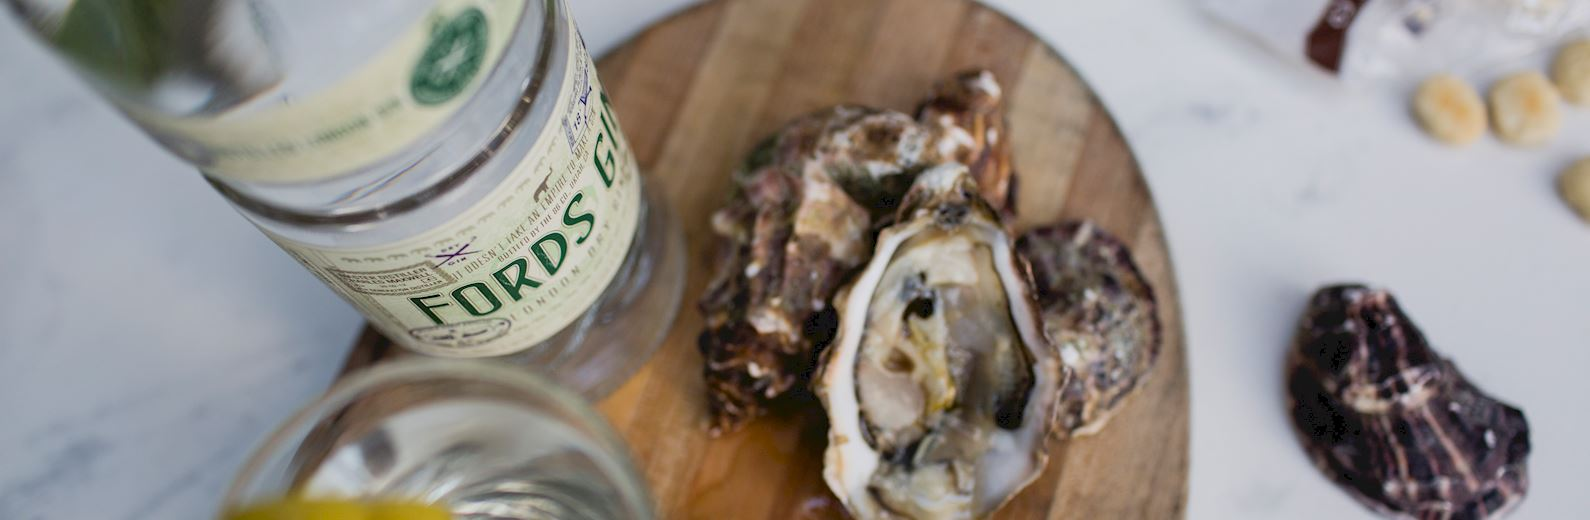 fords-gin-oysters